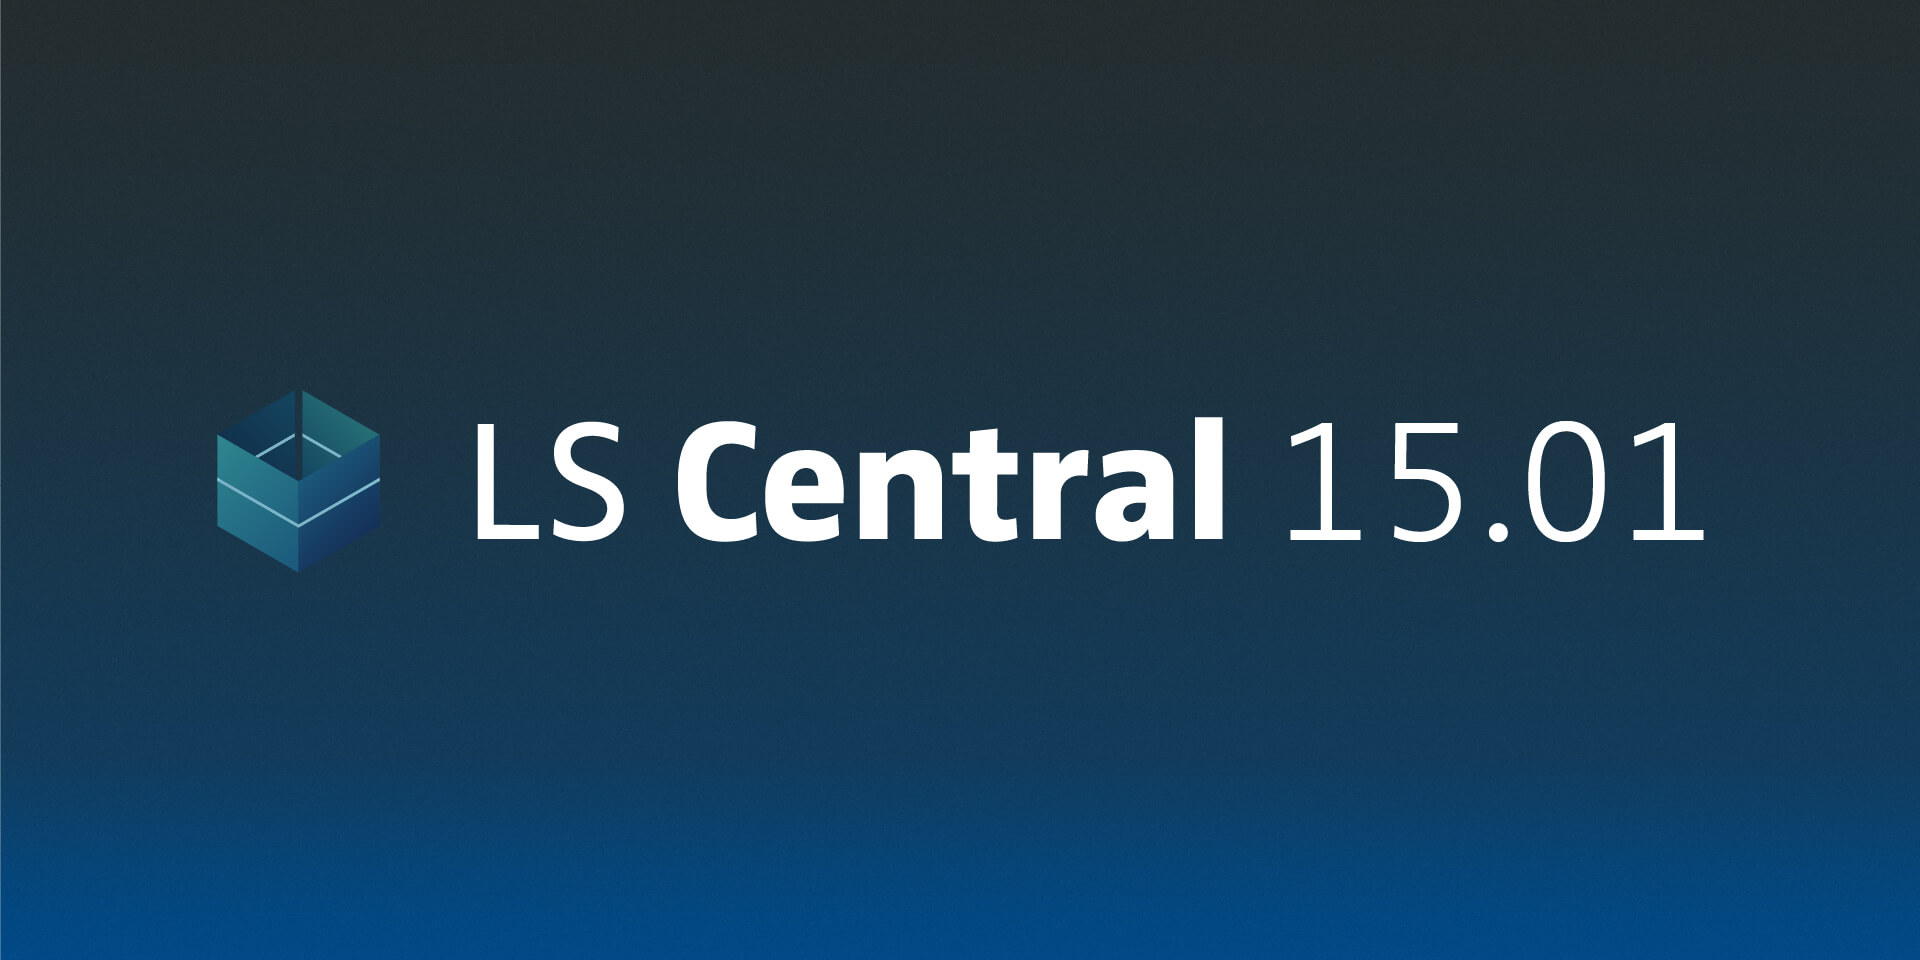 LS Central 15.01: improved item import, strengthened LS Central App